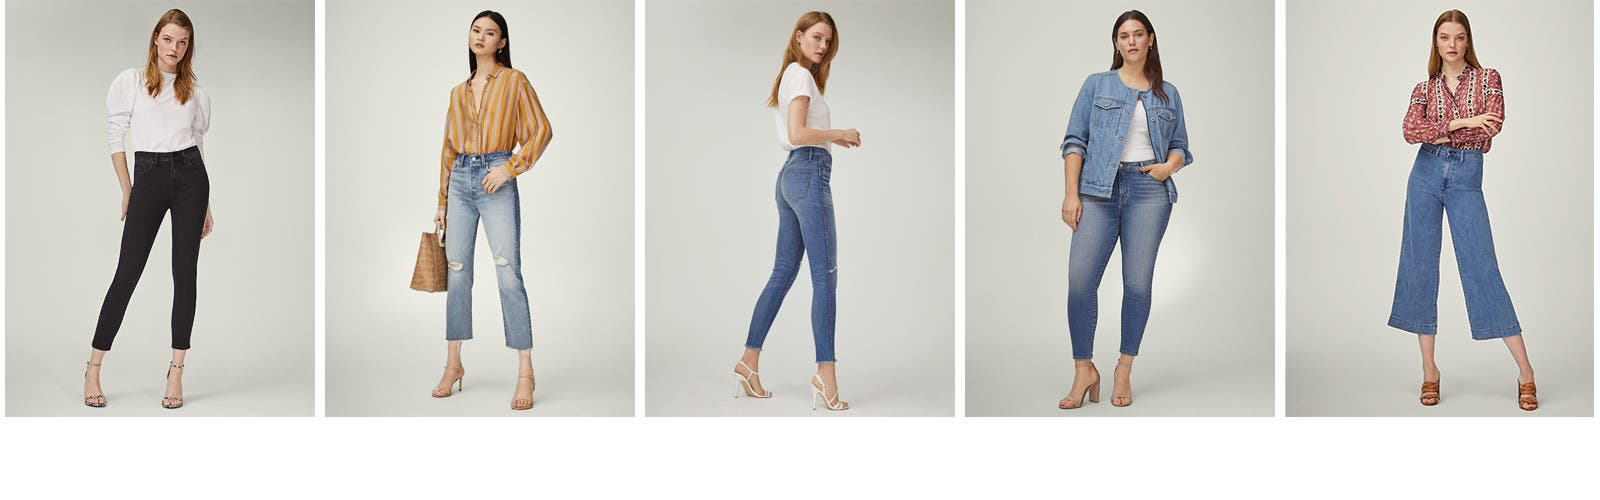 ba824298 Women's Jeans & Denim | Nordstrom